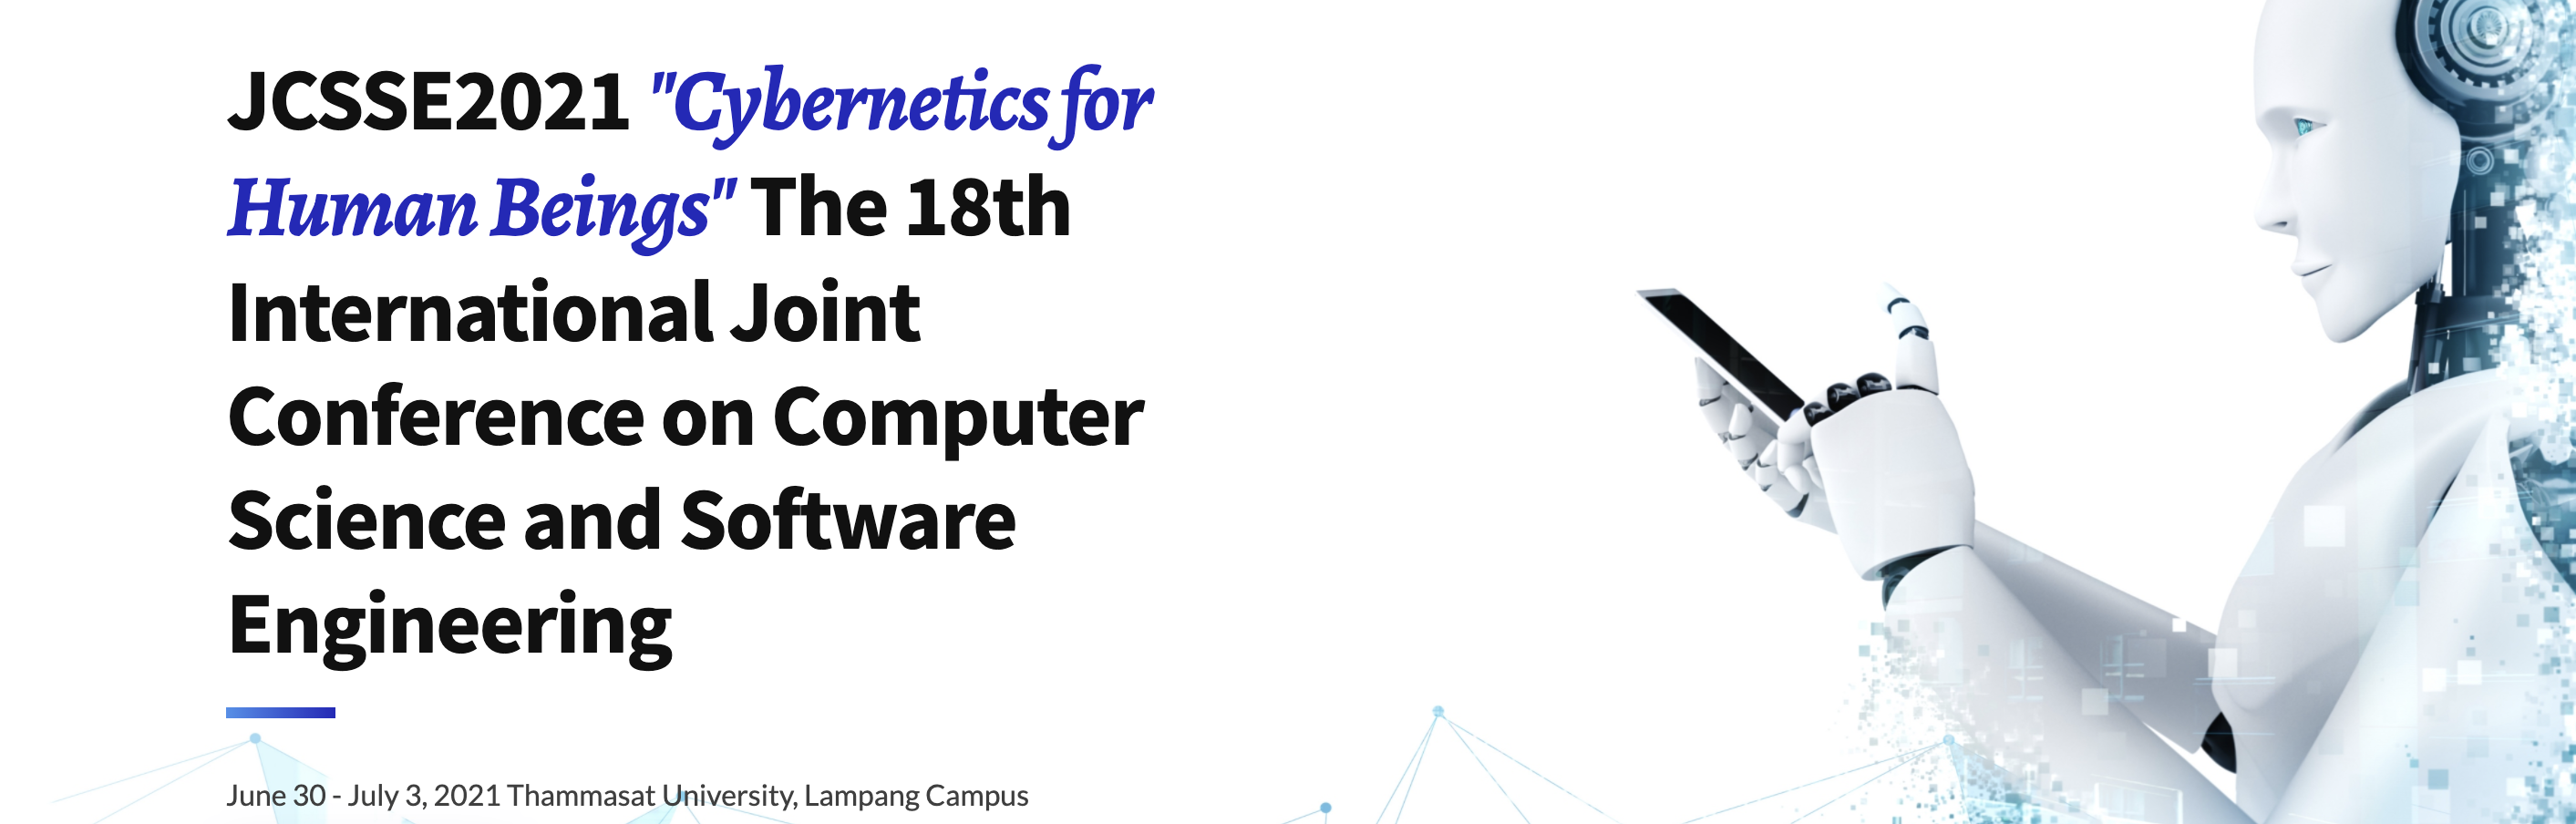 International Joint Conference on Computer Science and Software Engineering (JCSSE2021)